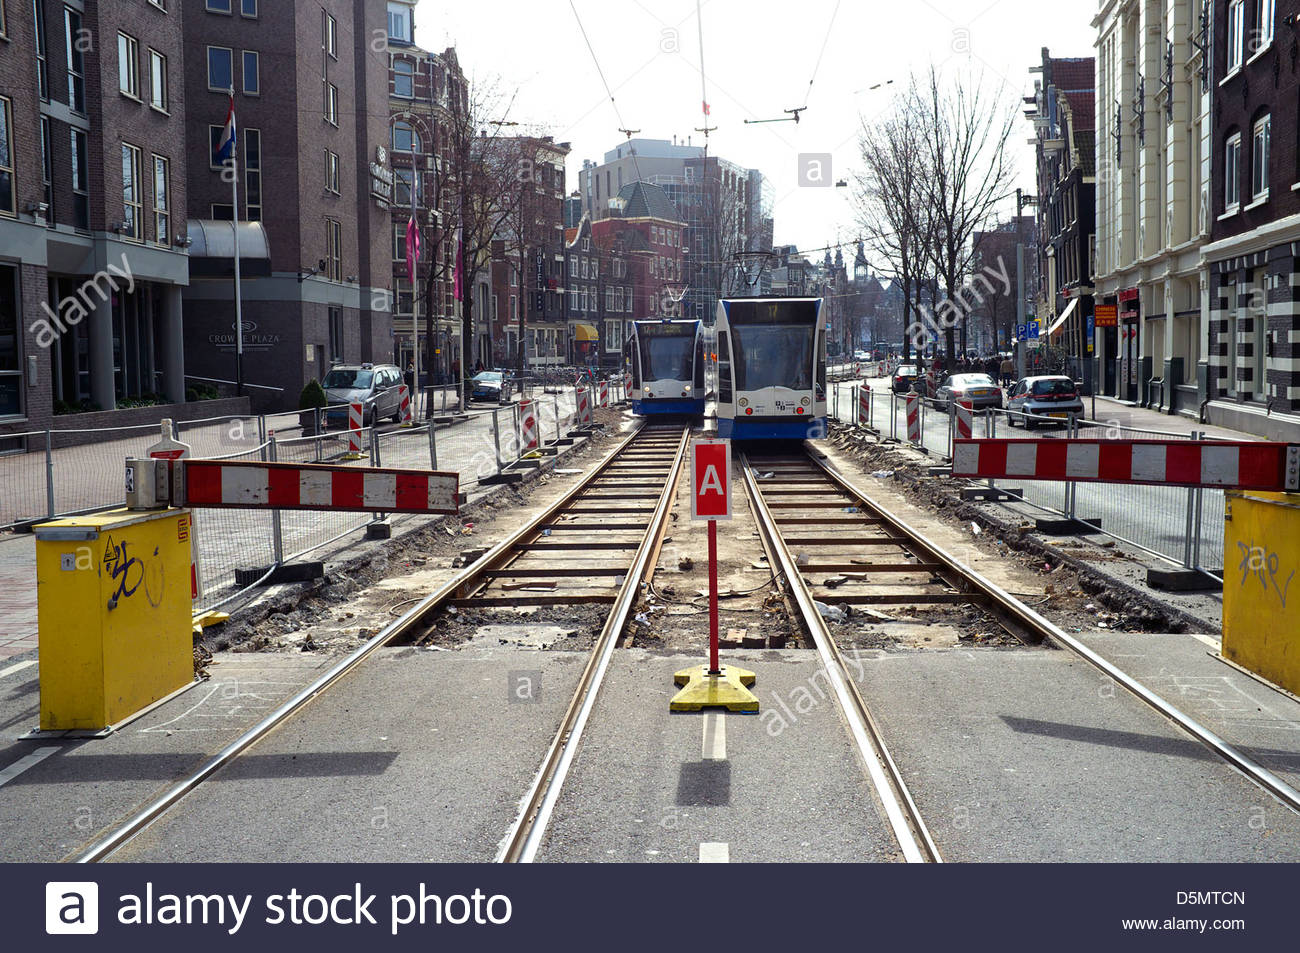 Tram line renewal works, in Amsterdam, the Netherlands. - Stock Image